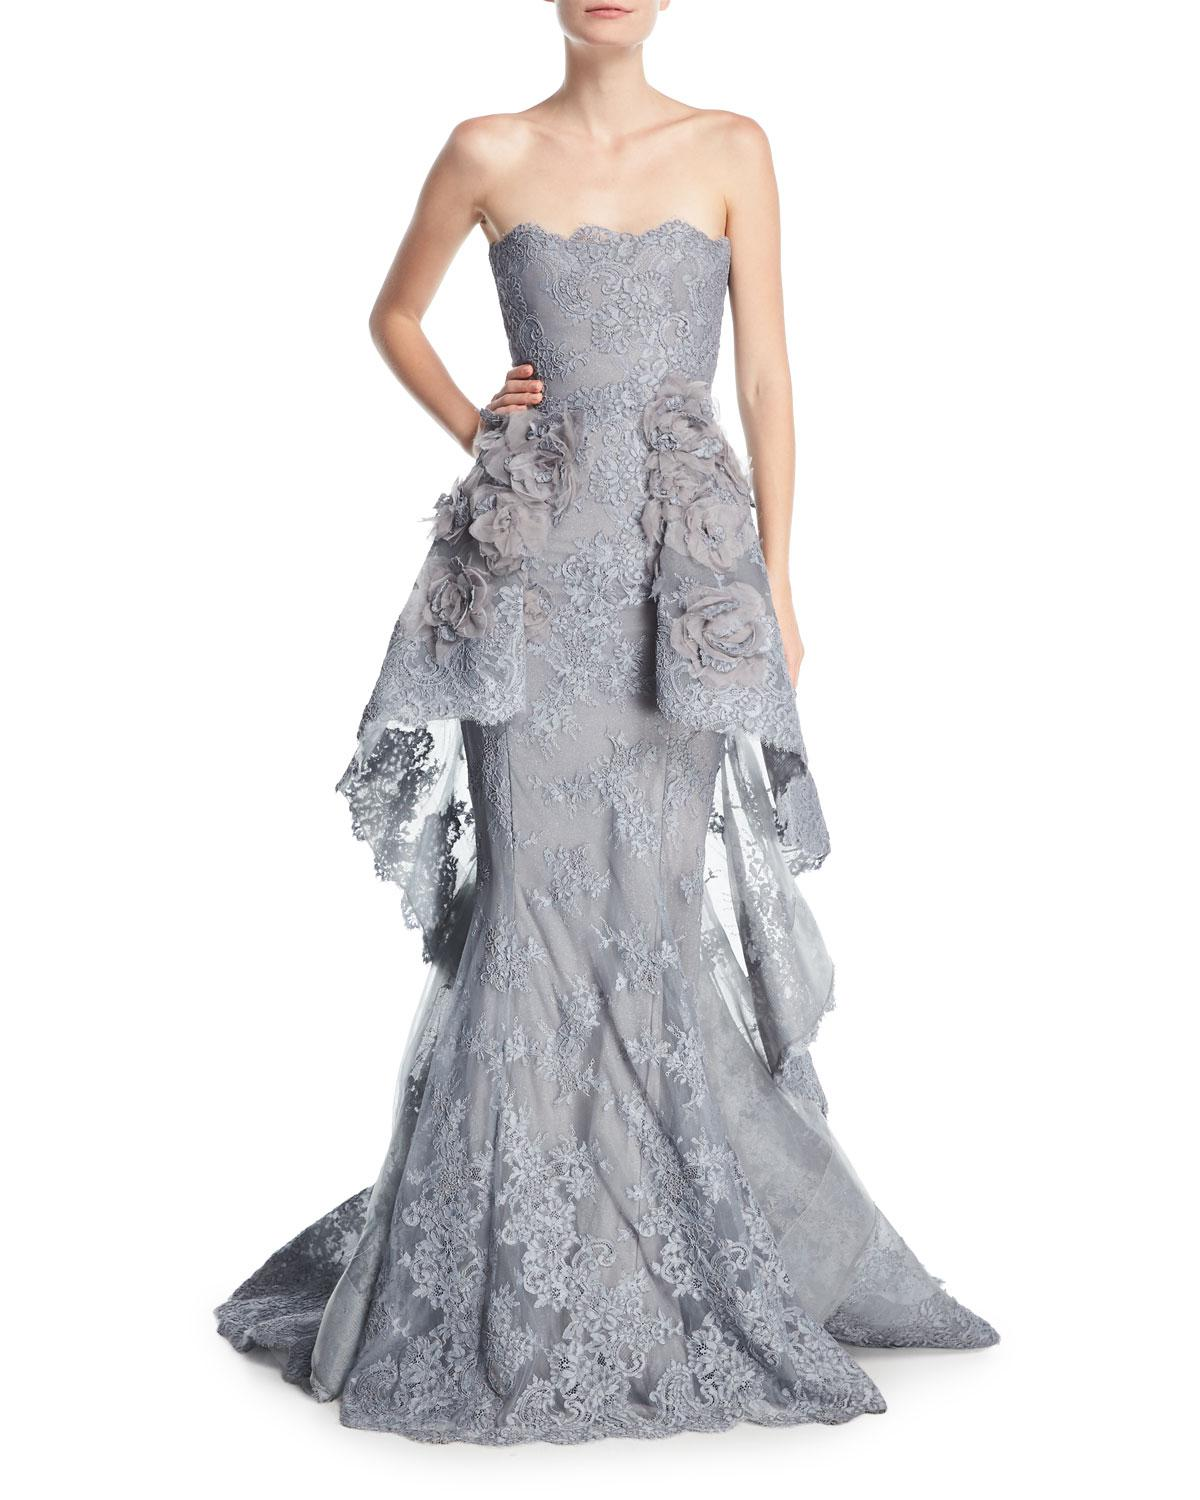 Lyst - Marchesa Strapless Lace Peplum Mermaid Gown in Gray